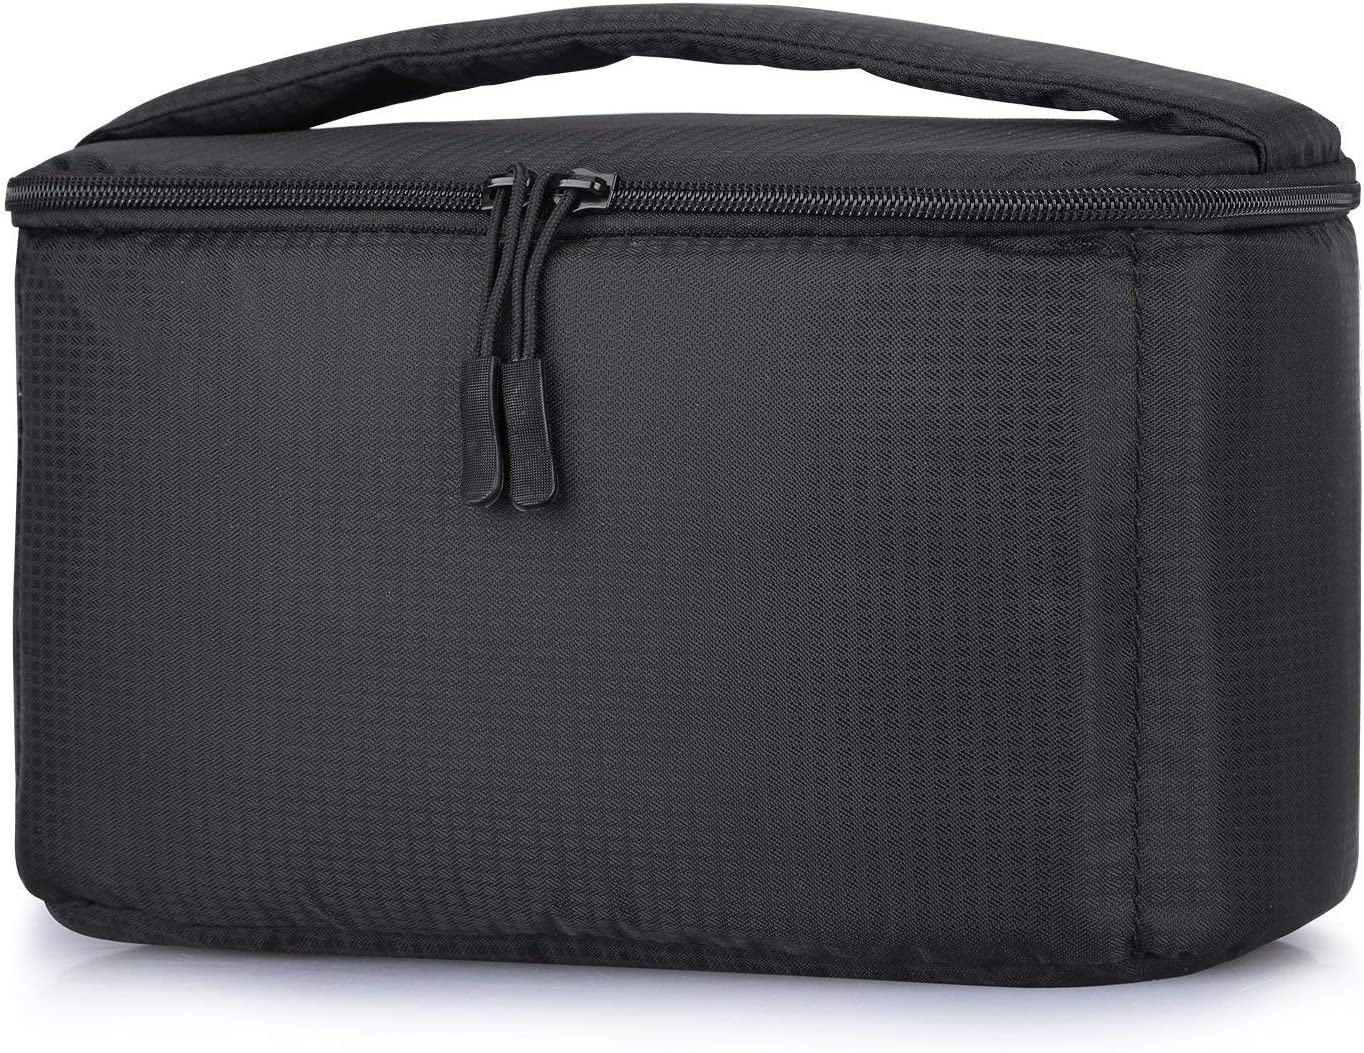 S-ZONE Water Resistant Camera Insert Bag with Sleeve Camera Case Upgraded Version 2.0